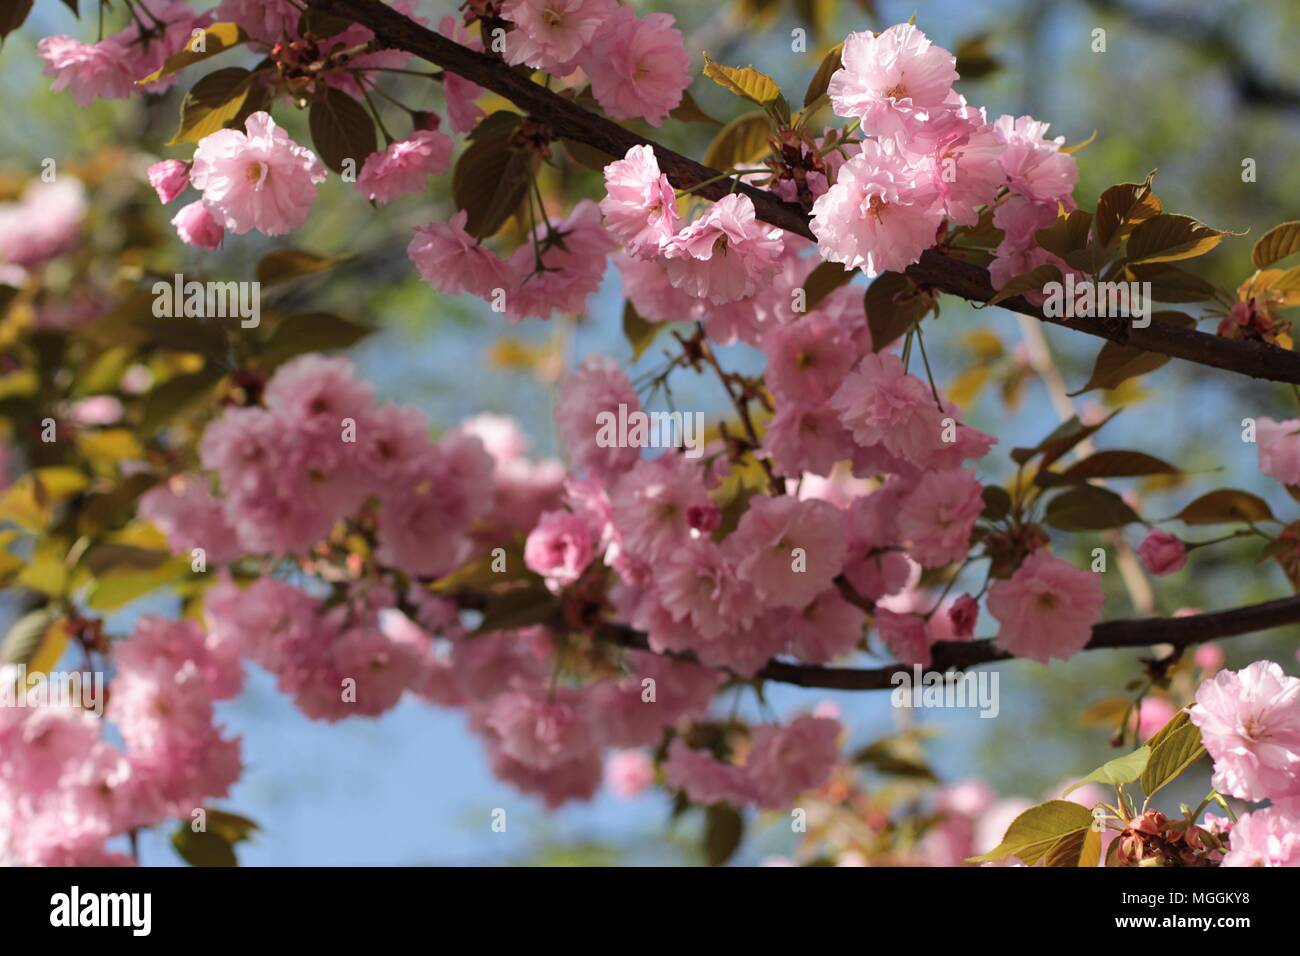 Pink Flowers Of Japanese Cherry Tree Prunus Serrulata Stock Photo